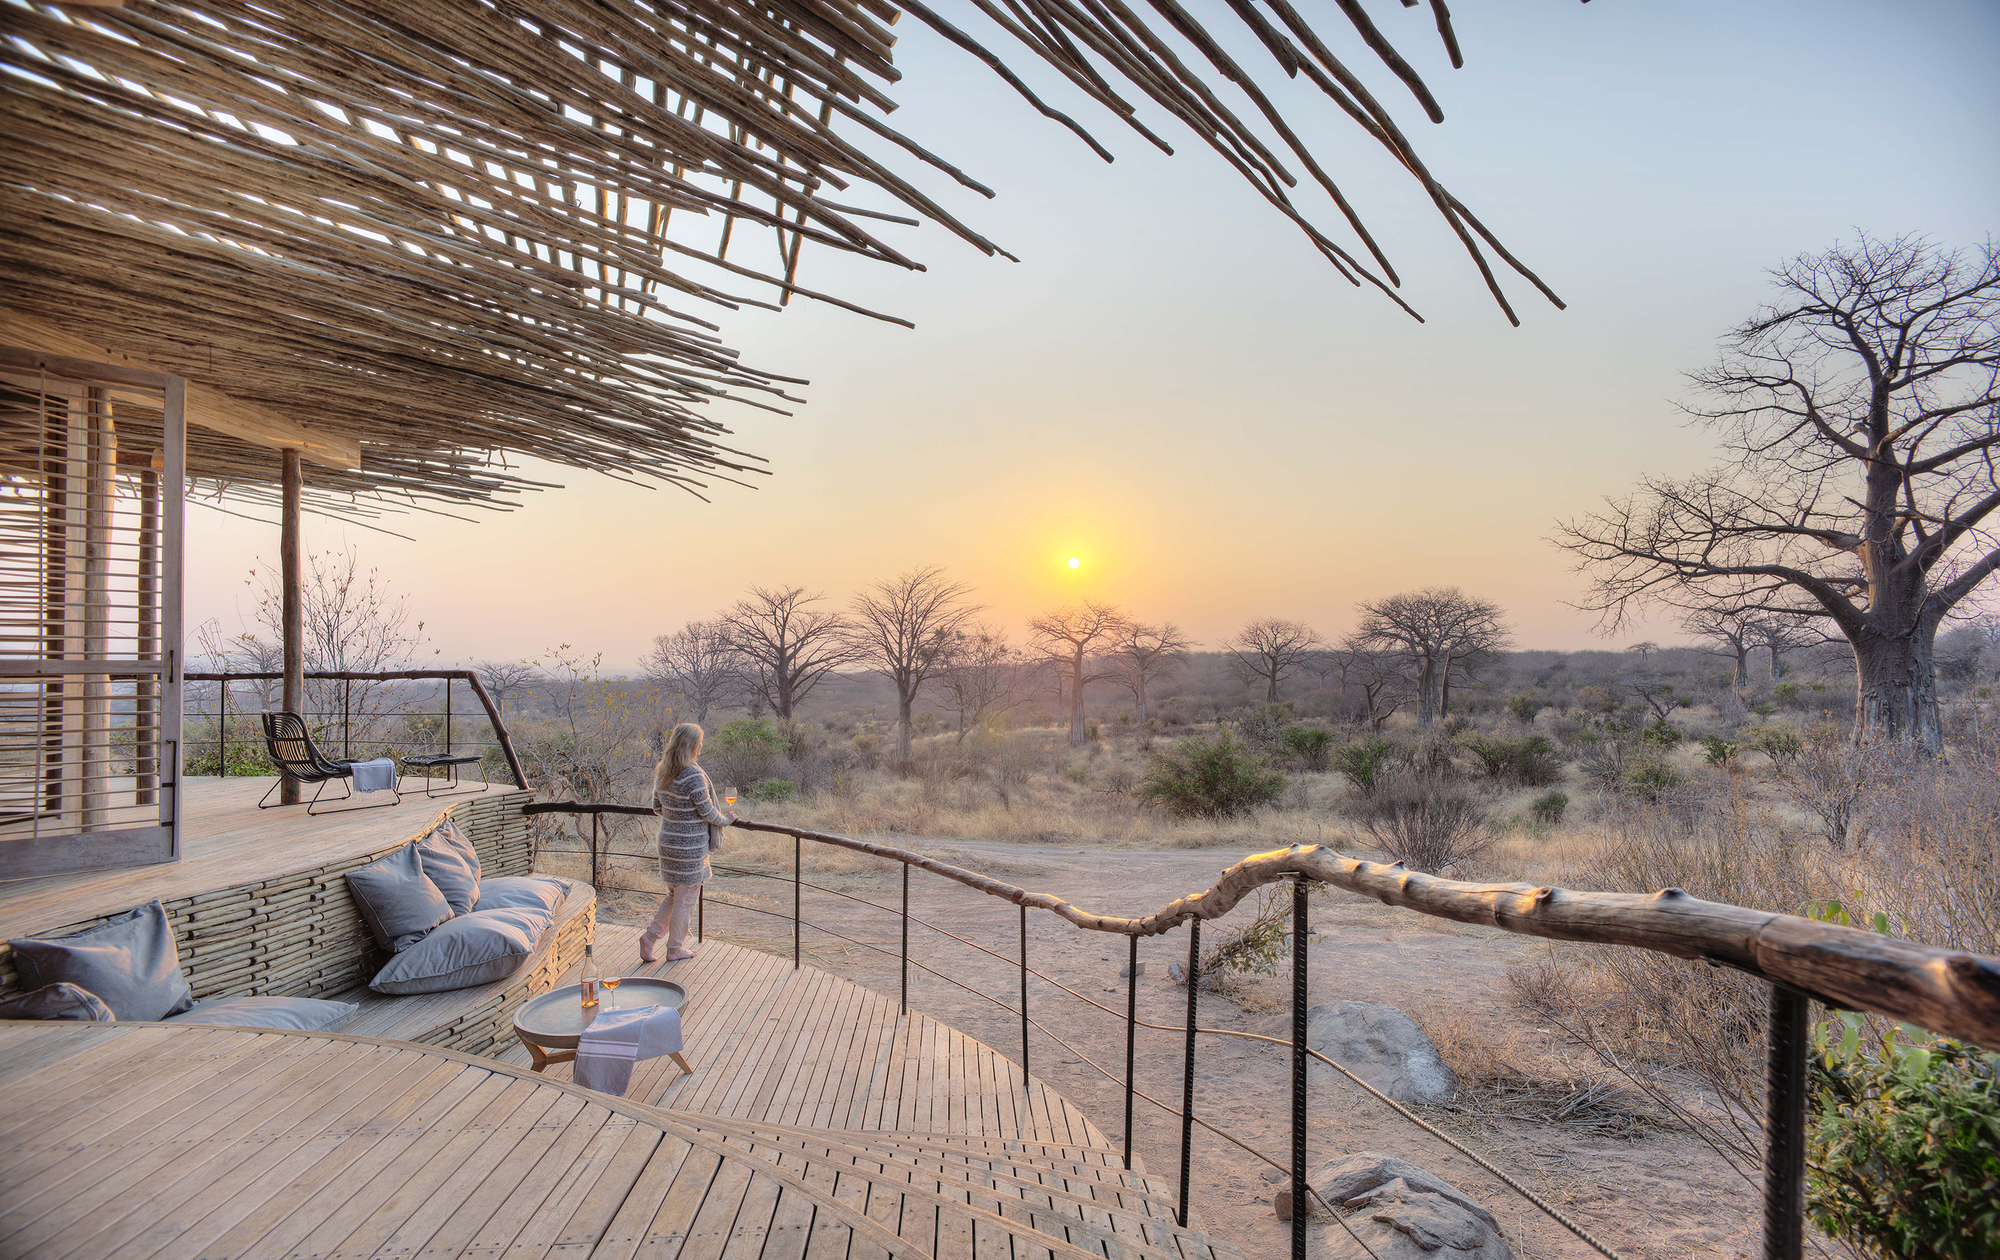 Amazing-African-scenery-viewed-from-the-the-Jabali-Forest-Lodge